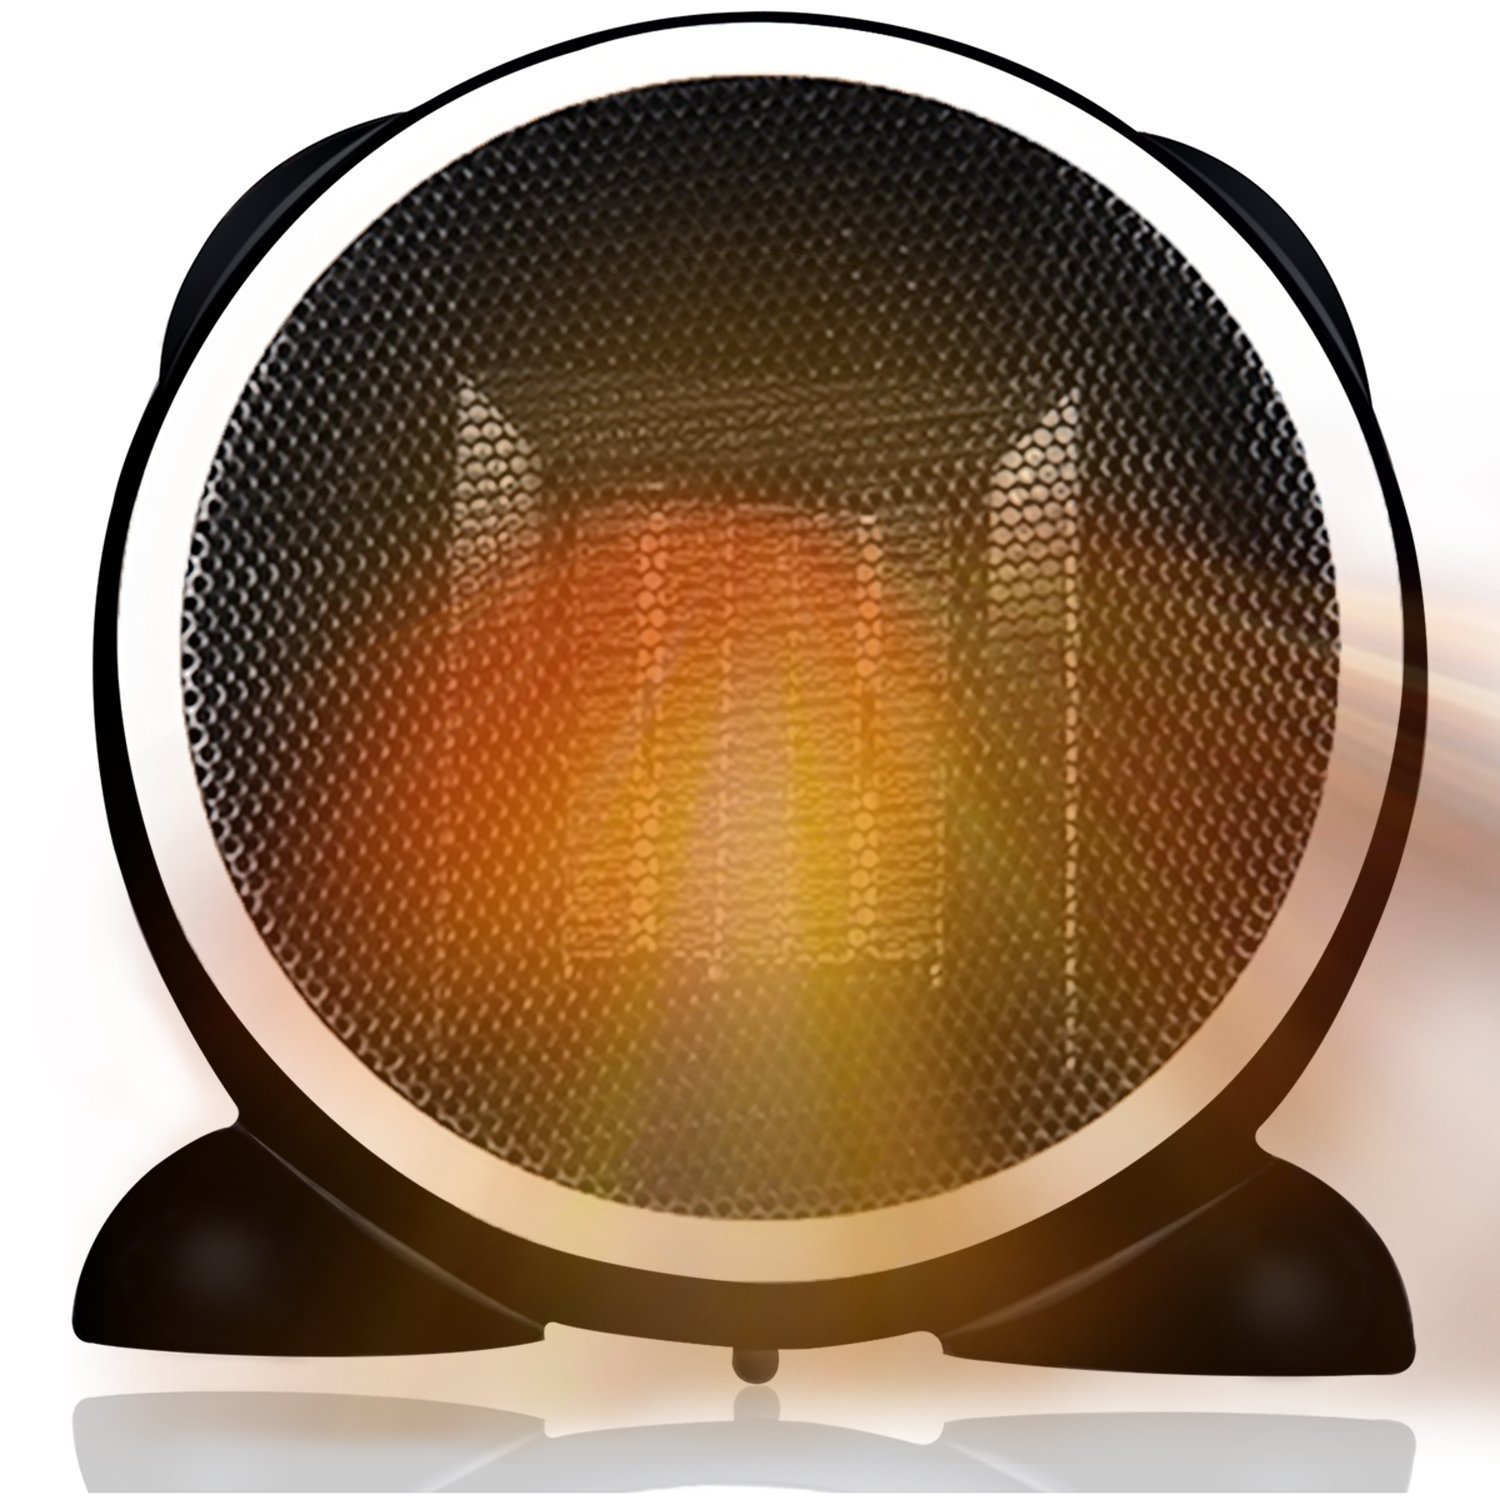 Portable Table Heater Warming Personal Space Heater with Over Heat Protection Tip over Protection Mini Heater for Home Office Indoor